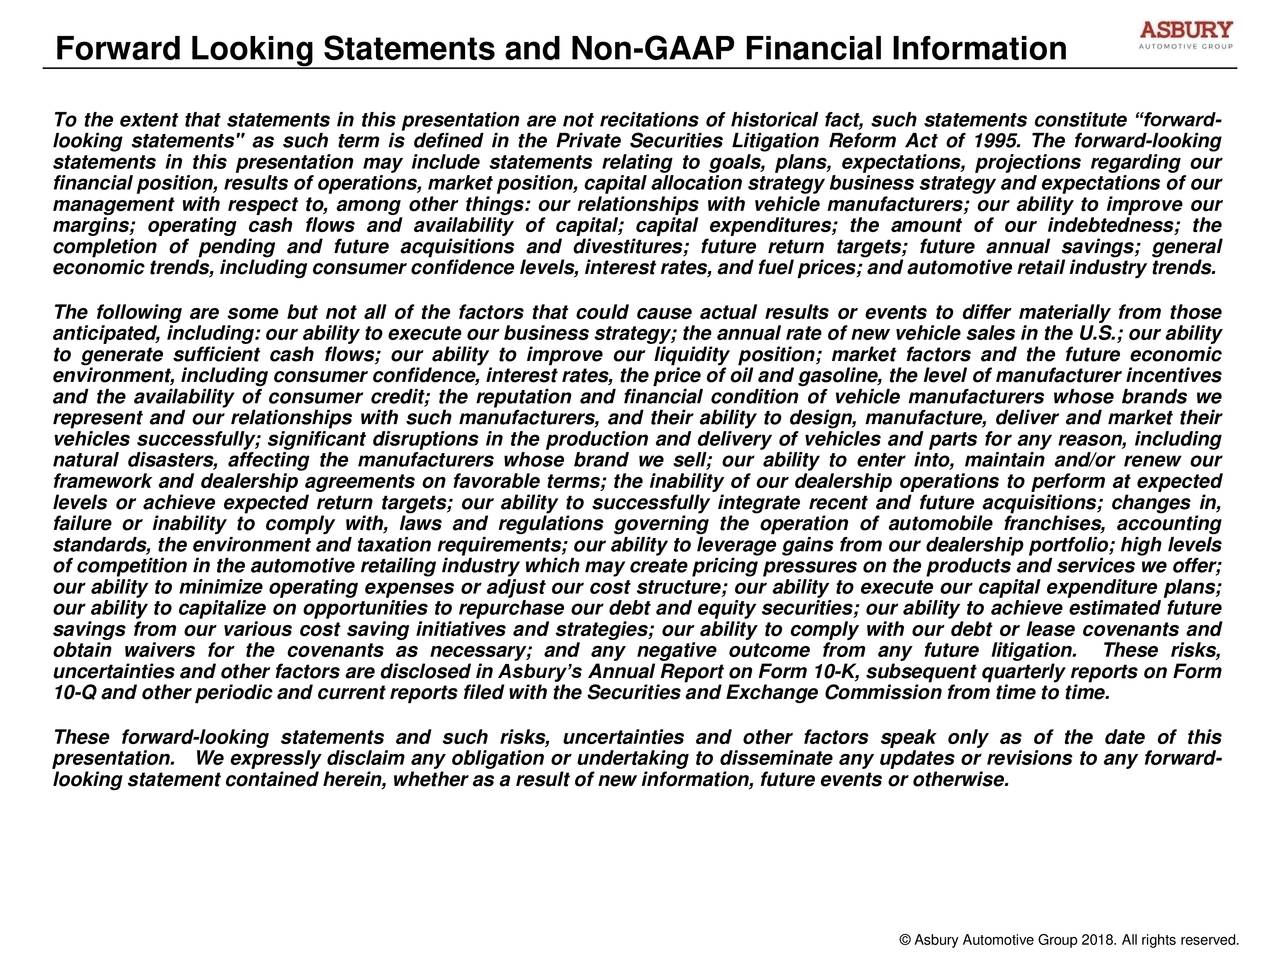 """To the extent that statements in this presentation are not recitations of historical fact, such statements constitute """"forward- looking statements"""" as such term is defined in the Private Securities Litigation Reform Act of 1995. The forward-looking statements in this presentation may include statements relating to goals, plans, expectations, projections regarding our financial position, results of operations, market position, capital allocation strategy business strategy and expectations of our management with respect to, among other things: our relationships with vehicle manufacturers; our ability to improve our margins; operating cash flows and availability of capital; capital expenditures; the amount of our indebtedness; the completion of pending and future acquisitions and divestitures; future return targets; future annual savings; general economic trends, including consumer confidence levels, interest rates, and fuel prices; and automotive retail industry trends. The following are some but not all of the factors that could cause actual results or events to differ materially from those anticipated, including: our ability to execute our business strategy; the annual rate of new vehicle sales in the U.S.; our ability to generate sufficient cash flows; our ability to improve our liquidity position; market factors and the future economic environment, including consumer confidence, interest rates, the price of oil and gasoline, the level of manufacturer incentives and the availability of consumer credit; the reputation and financial condition of vehicle manufacturers whose brands we represent and our relationships with such manufacturers, and their ability to design, manufacture, deliver and market their vehicles successfully; significant disruptions in the production and delivery of vehicles and parts for any reason, including natural disasters, affecting the manufacturers whose brand we sell; our ability to enter into, maintain and/or renew our framework and dealer"""